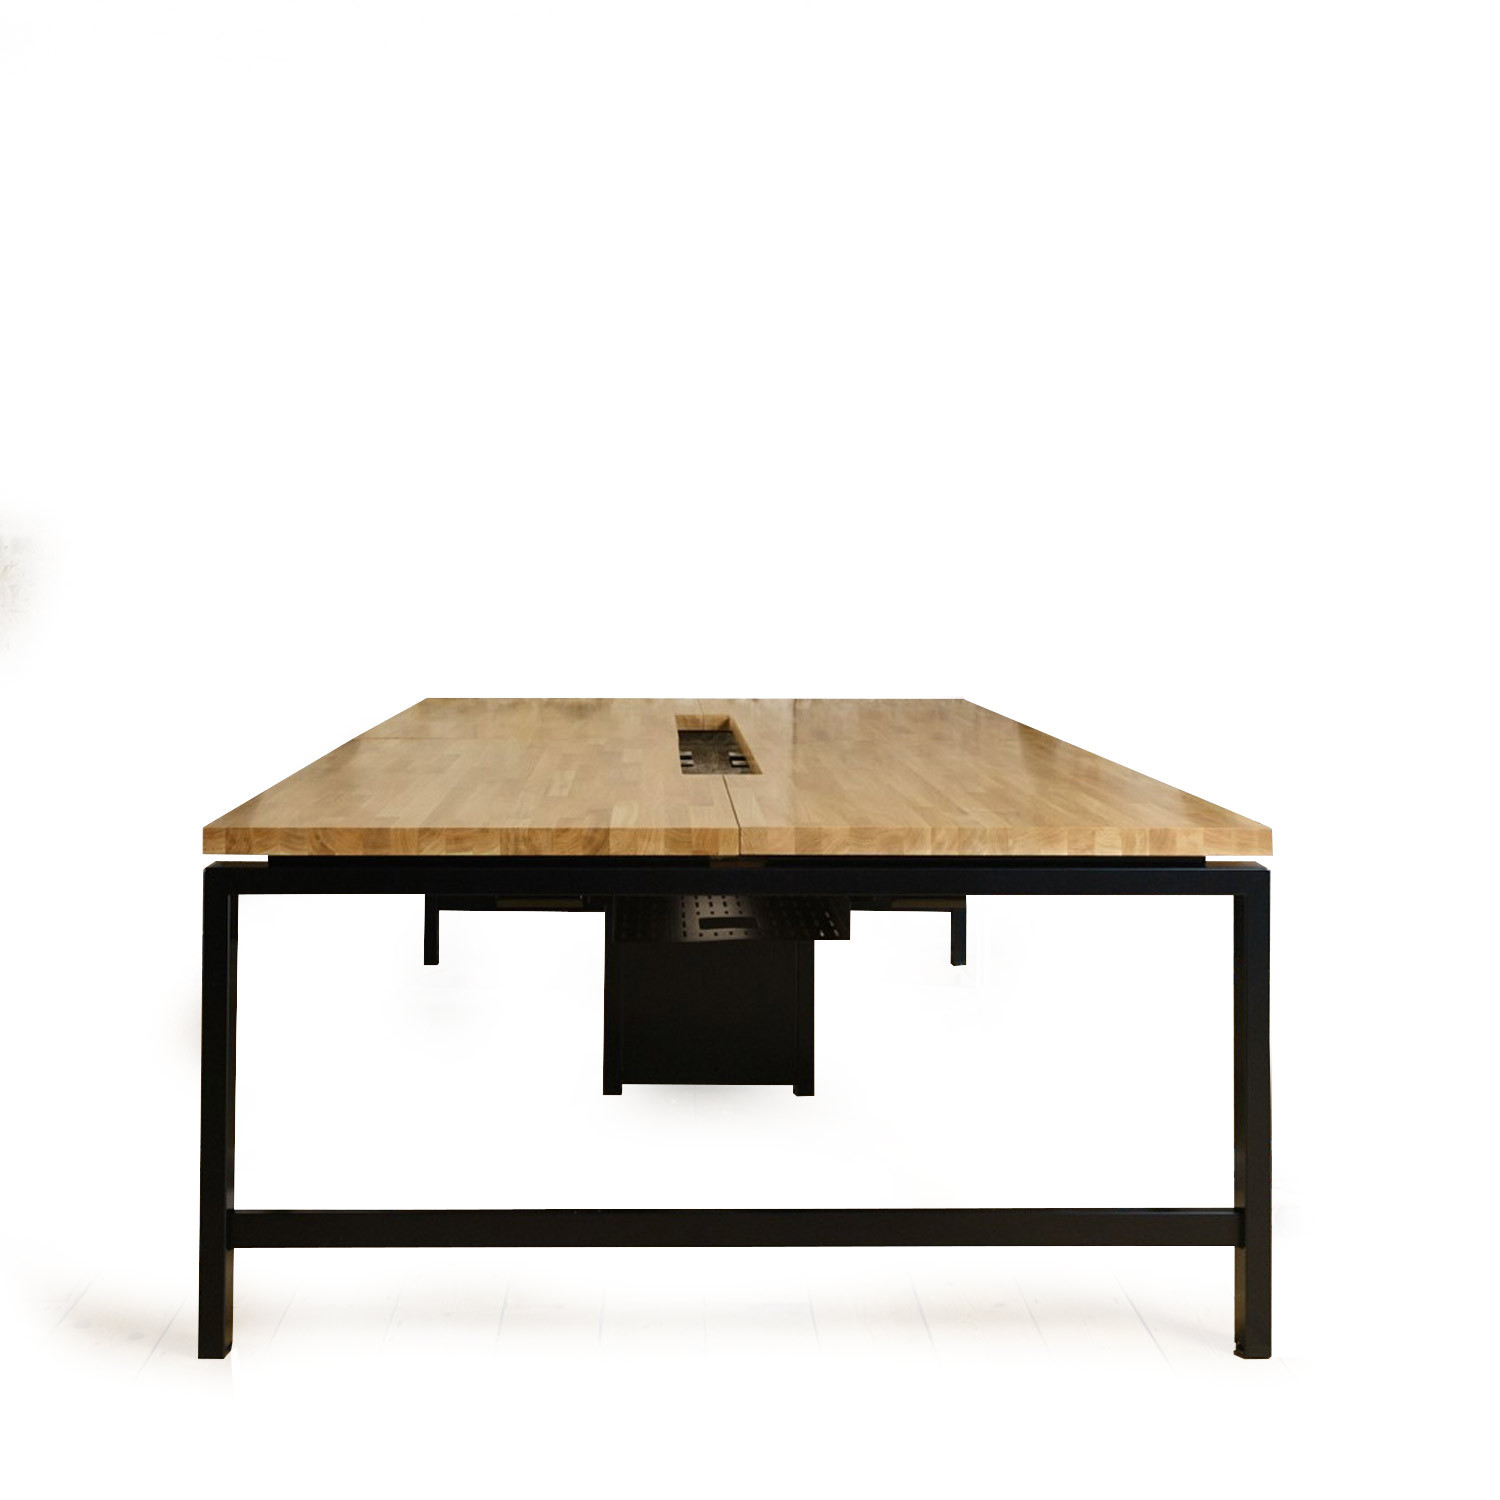 Studio Bench Desk